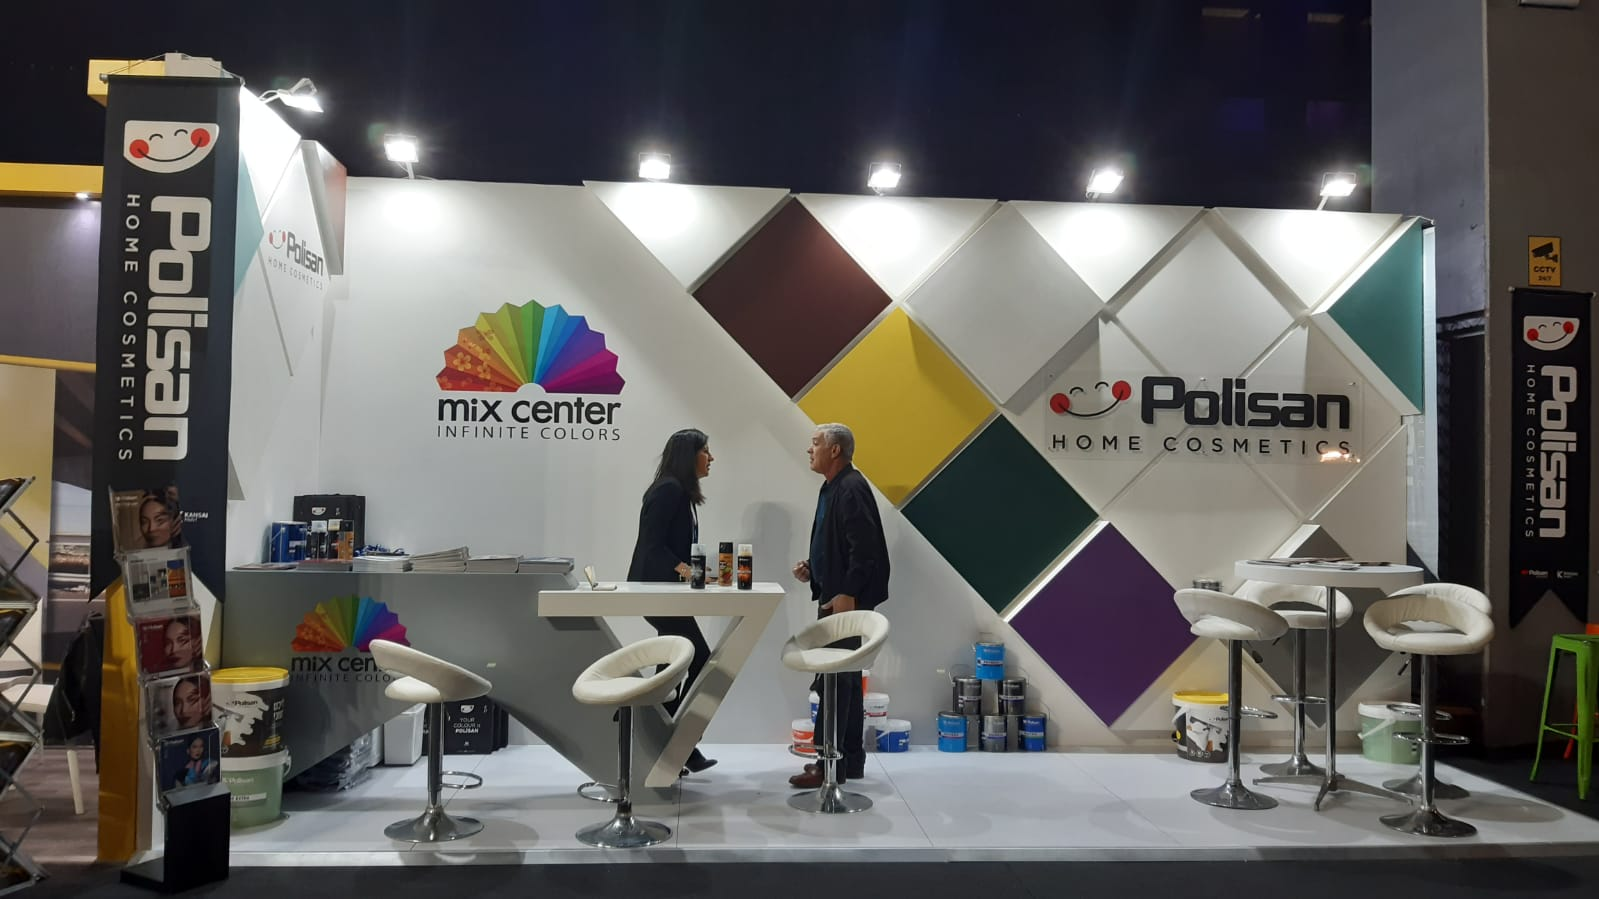 <a href='application-detail/192'>CLICK HERE - ISRAEL HOTEL INVESTMENT SUMMIT 2019 ISRAEL POLISAN STAND   SHOW MORE<a/>